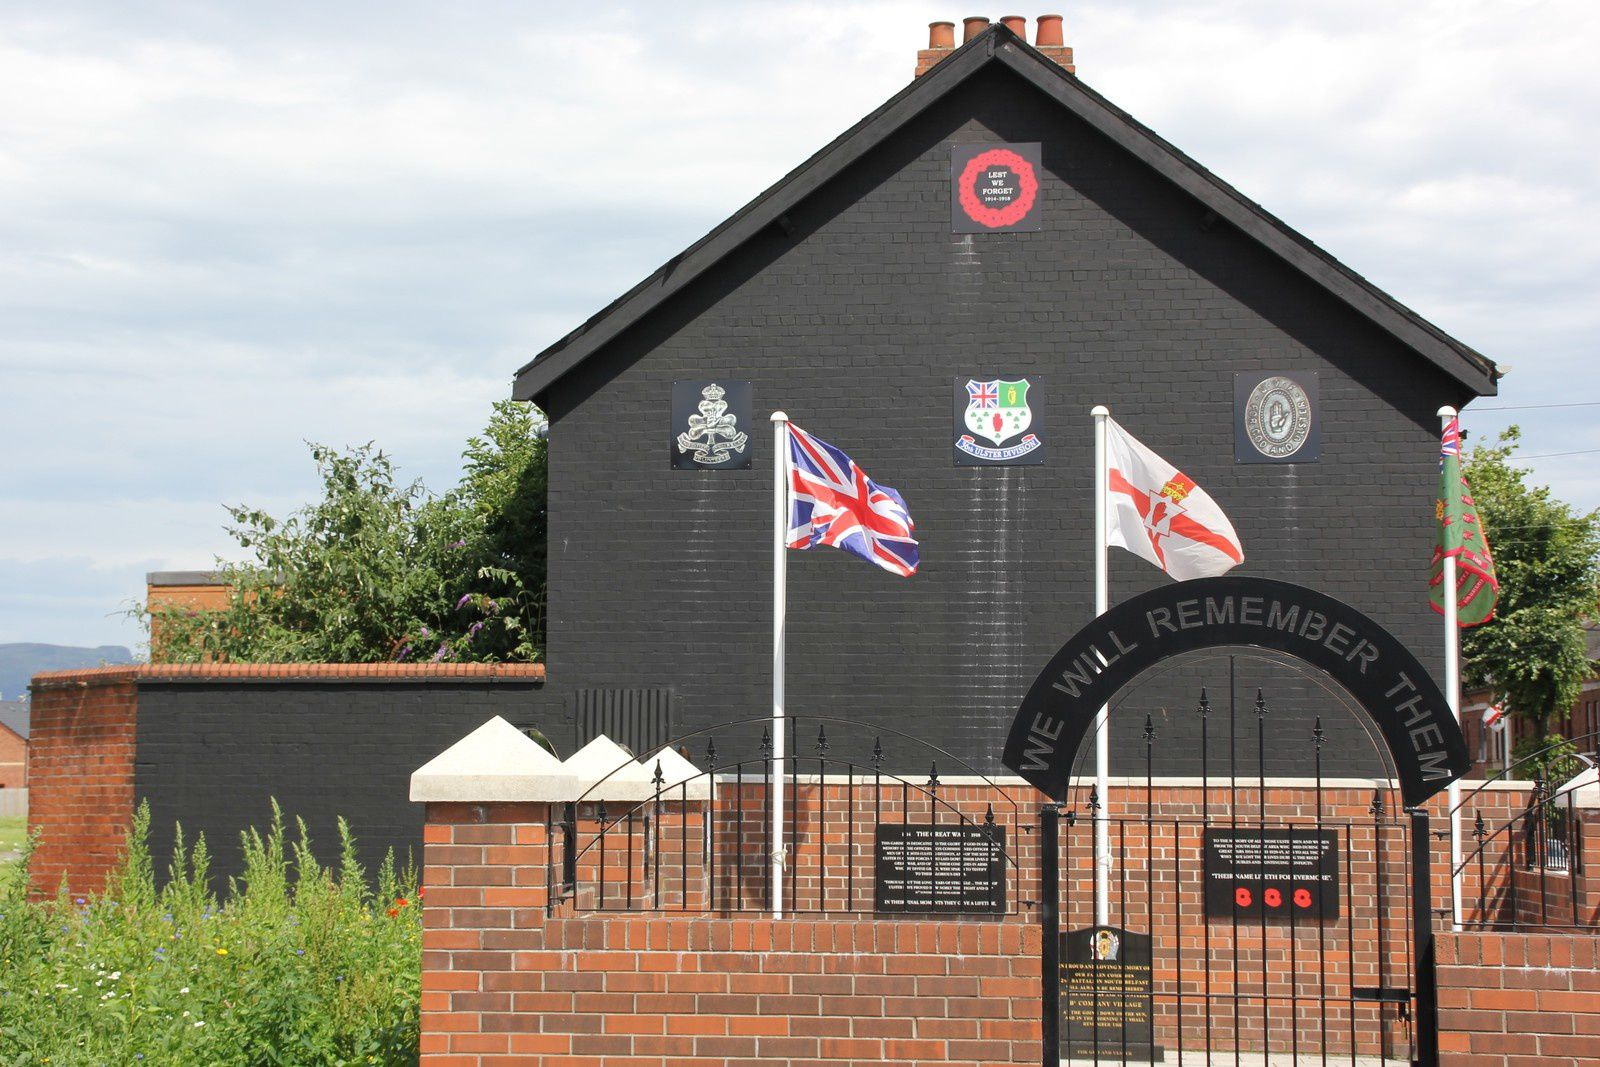 679) Donegall Avenue, South Belfast